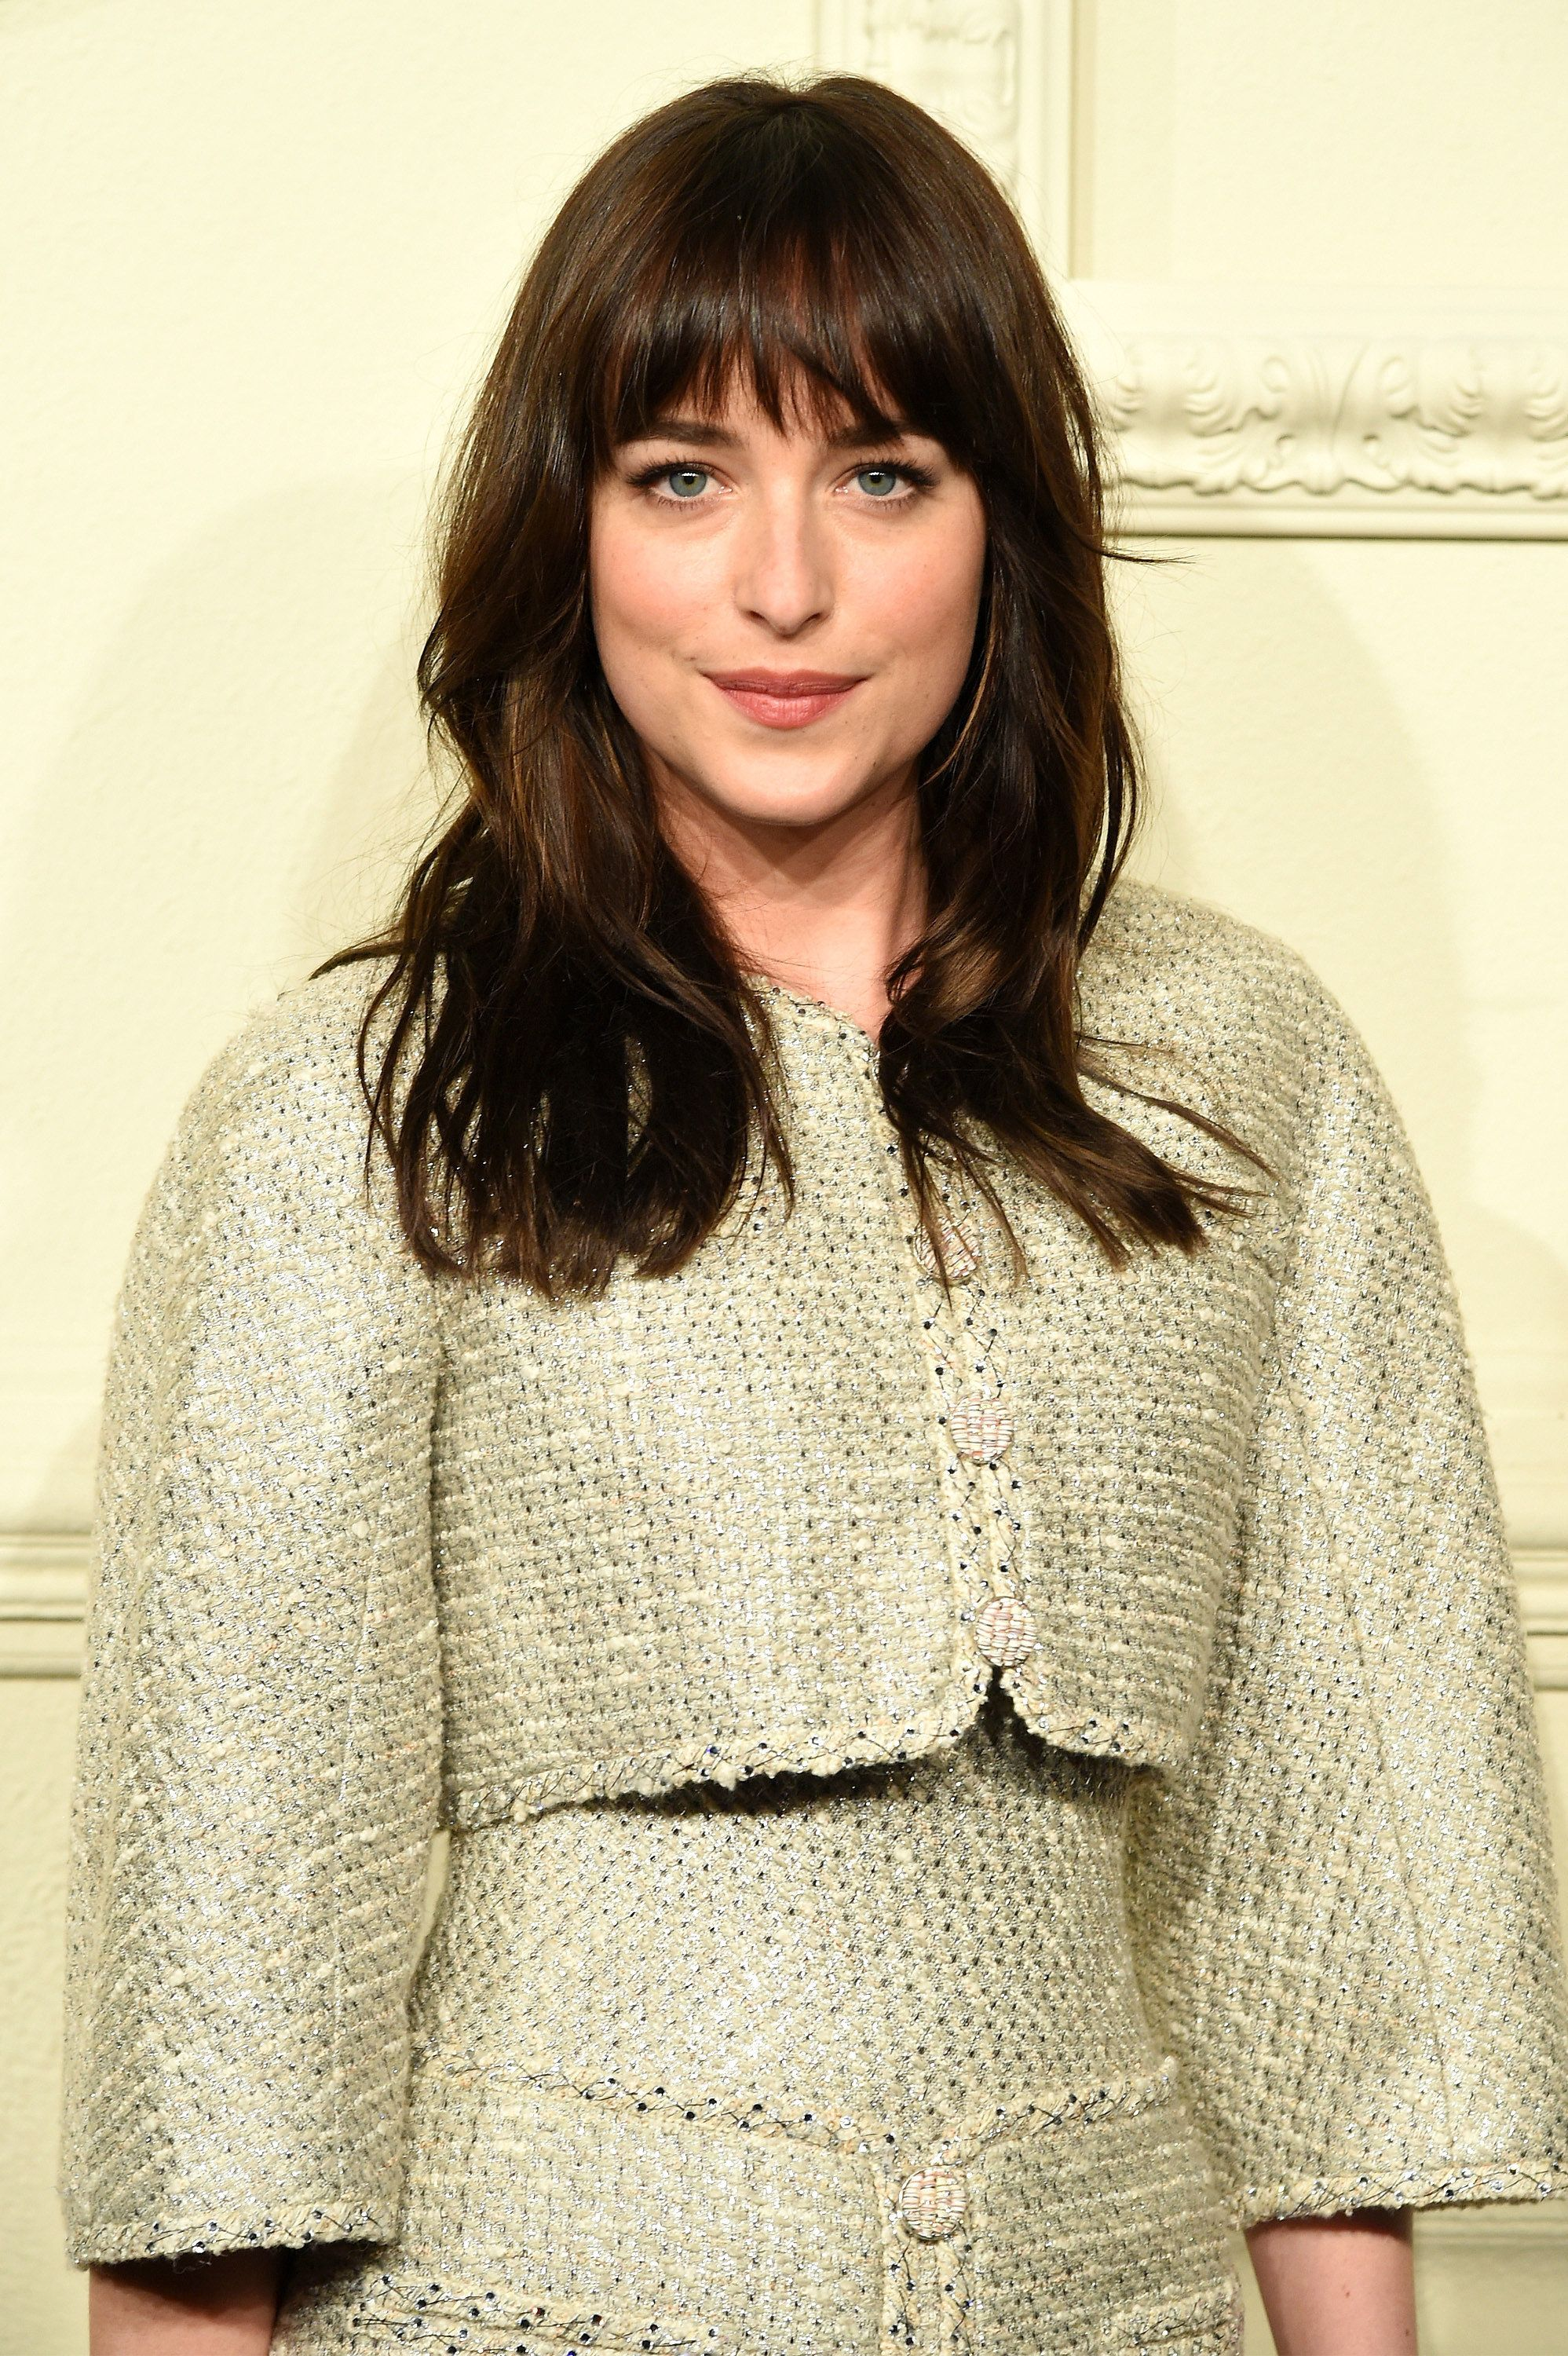 dakota johnson frisur frisuren mit pony und haar. Black Bedroom Furniture Sets. Home Design Ideas